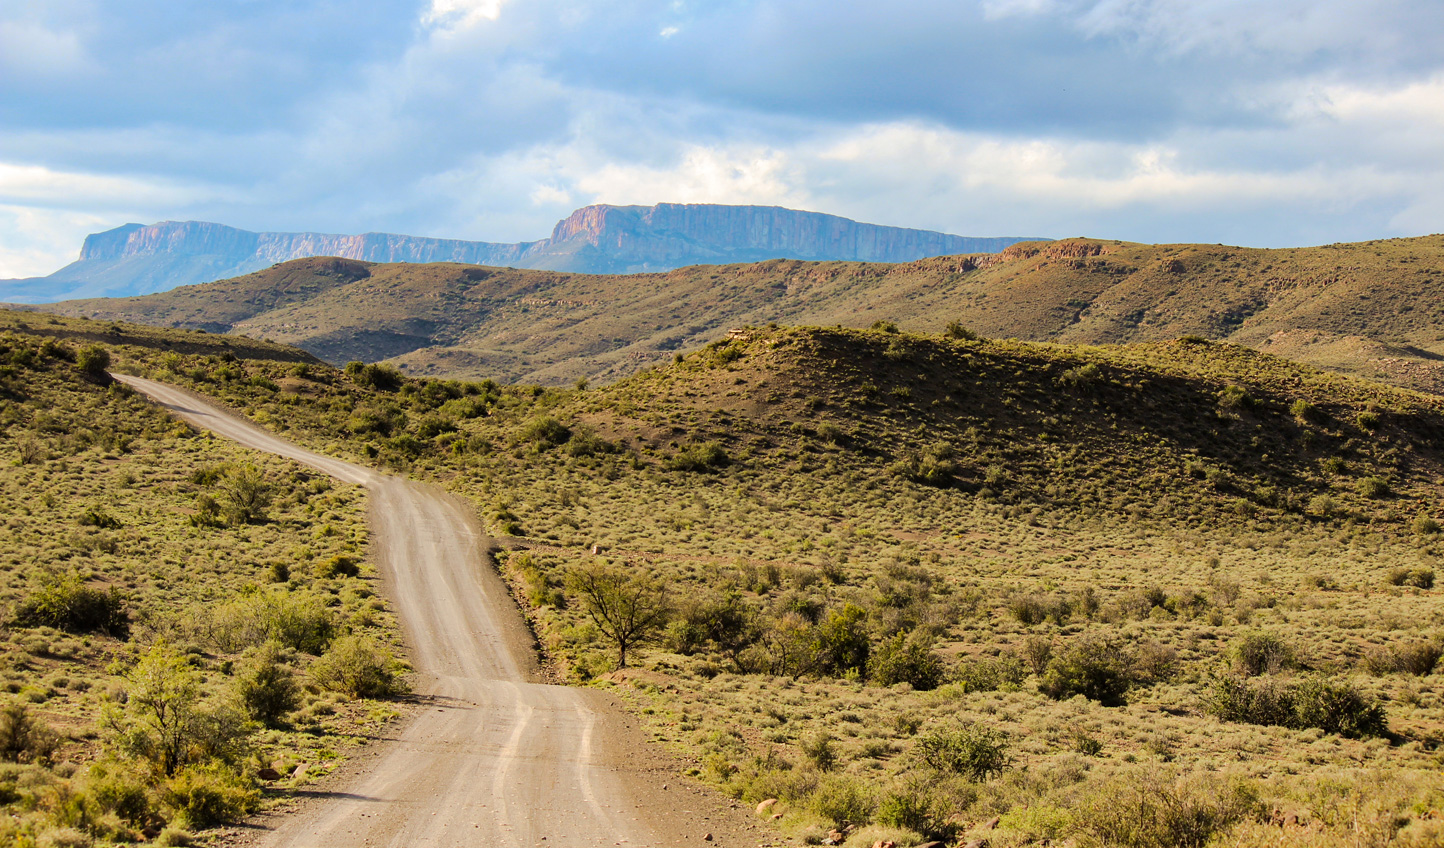 Head into the South African outback of the Klein Karoo